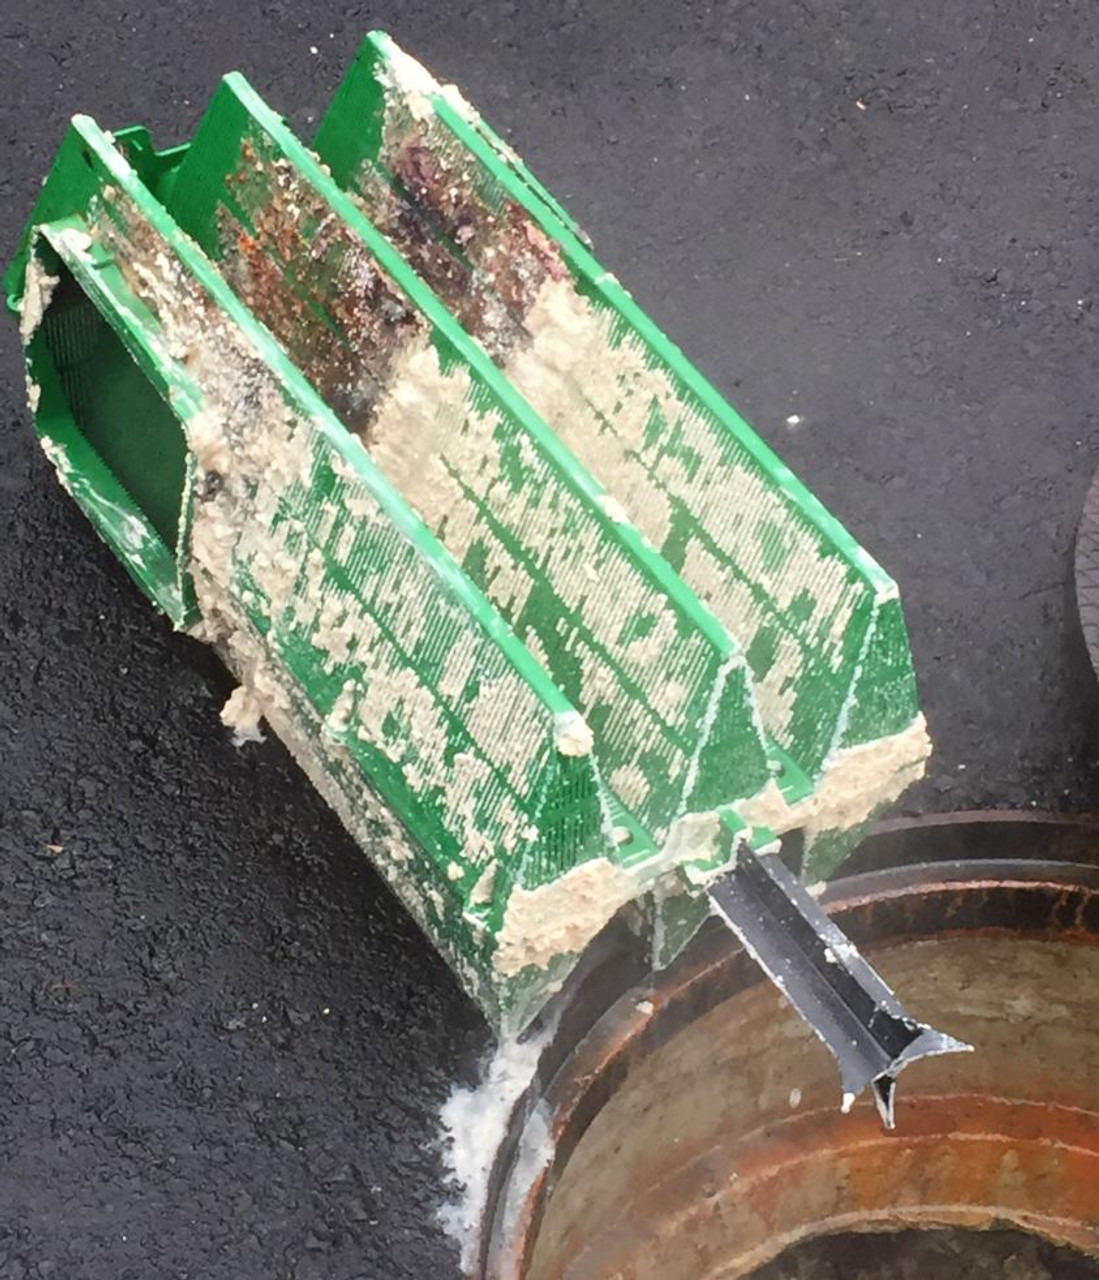 Freedom Filter - Effluent Filter for Grease Traps